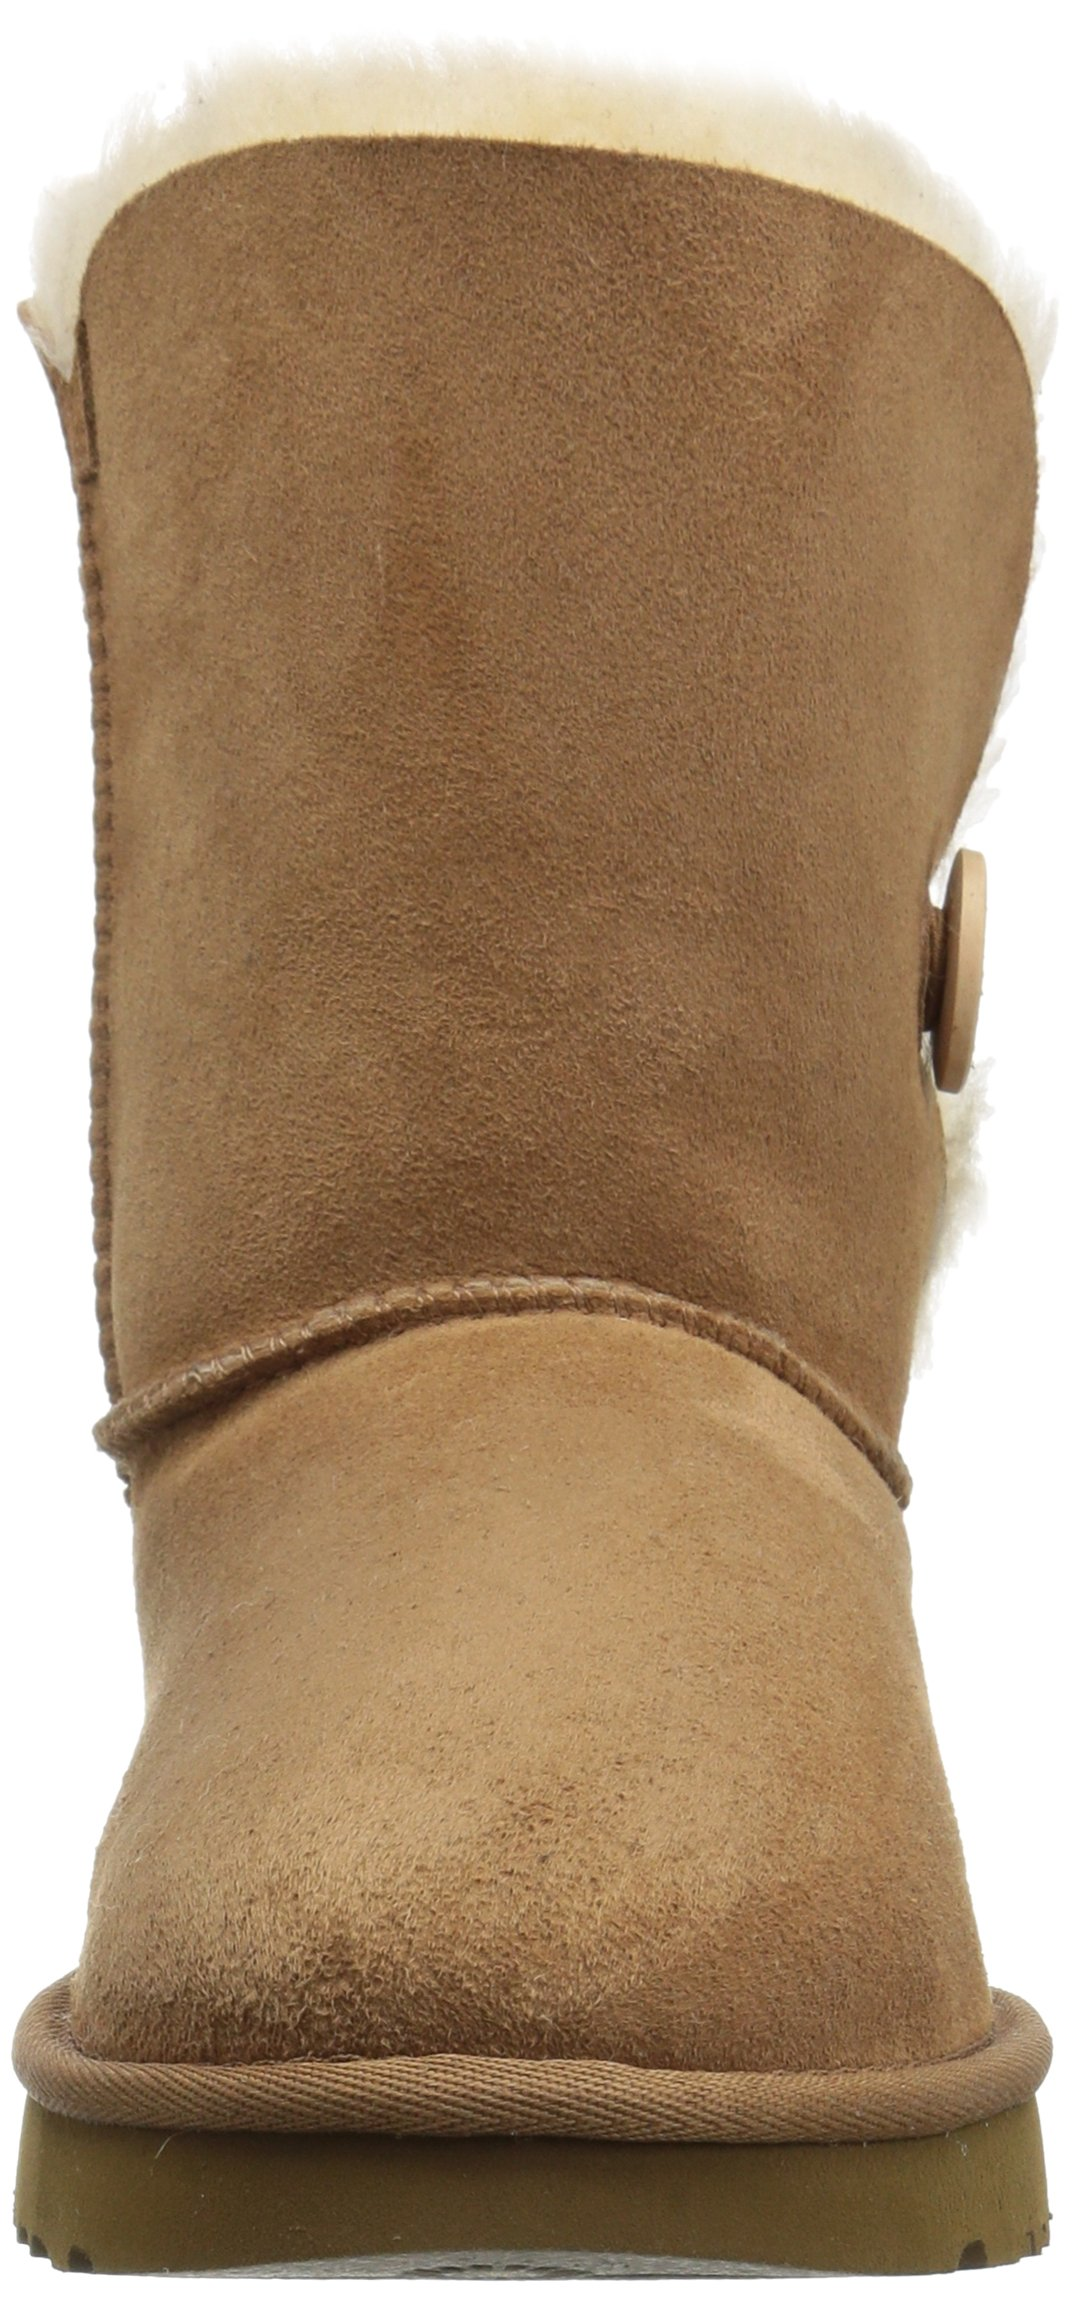 UGG Women's Bailey Button II Winter Boot, Chestnut, 8 B US by UGG (Image #4)